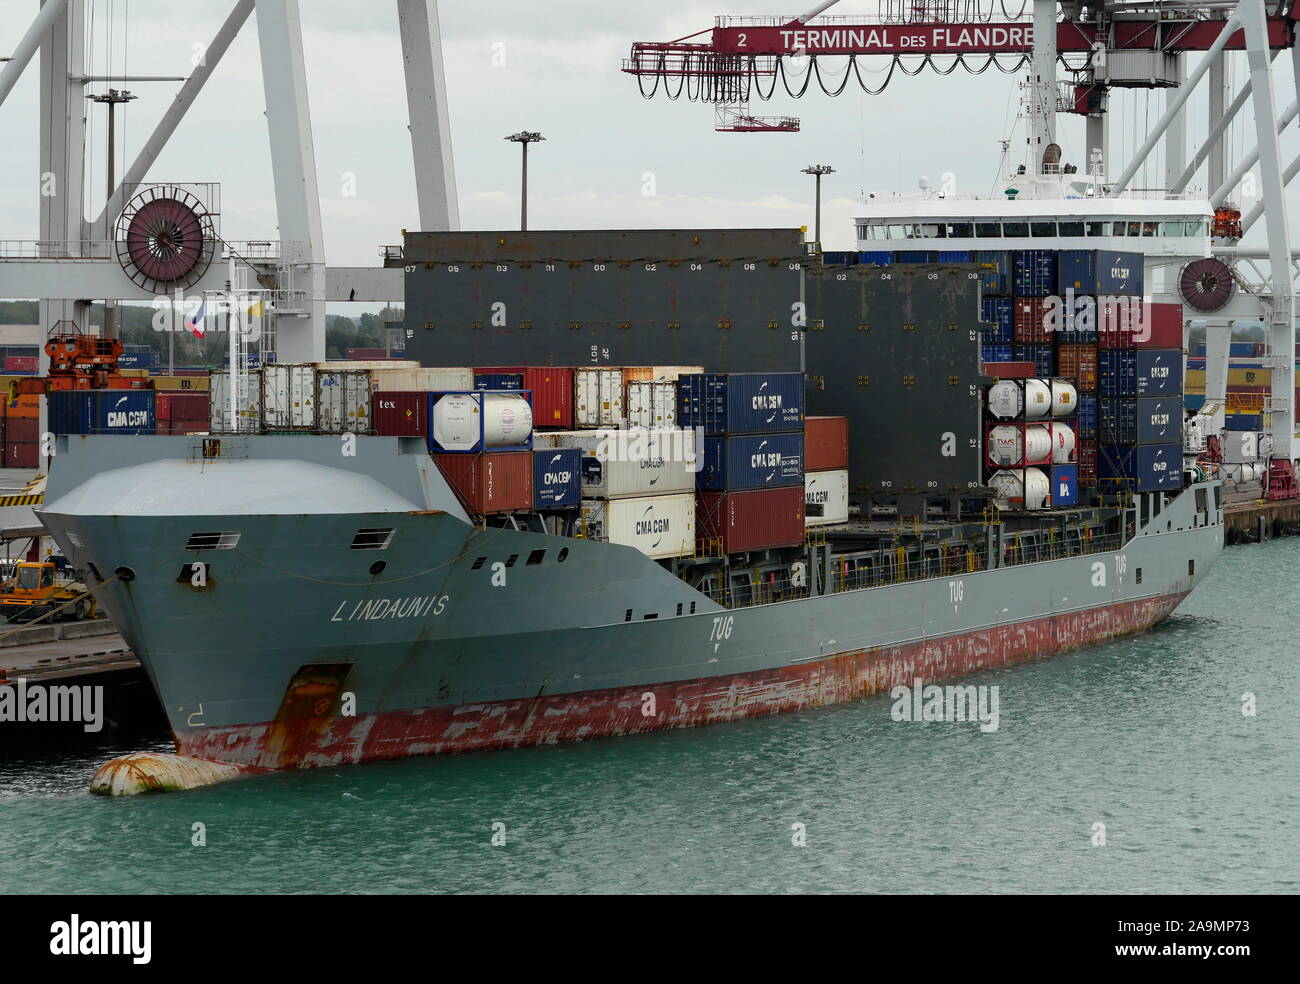 AJAXNETPHOTO. 15TH OCTOBER, 2019. DUNKERQUE, FRANCE. - LOADING CONTAINERS - THE SHORT HAUL COASTAL TRADER LINDAUNIS (10,585 GT) MOORED AT THE CONTAINER TERMINAL.PHOTO:JONATHAN EASTLAND/AJAX REF:GX8 191510 20919 Stock Photo